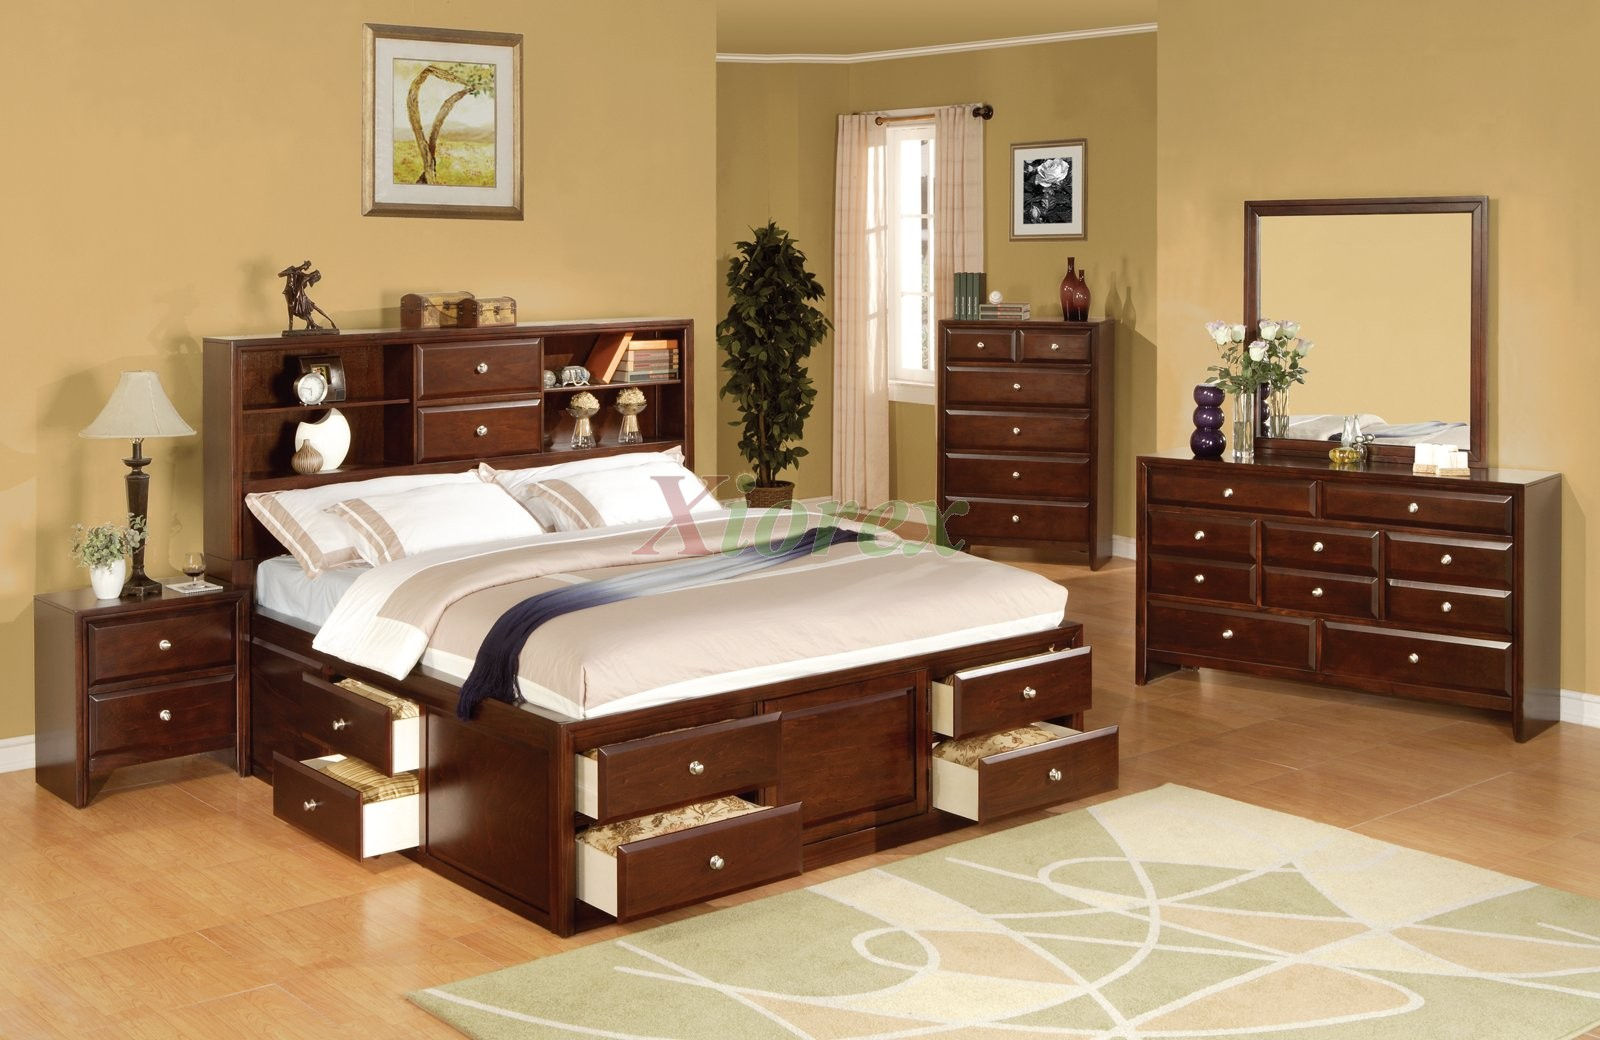 gallery for bedroom furniture storage